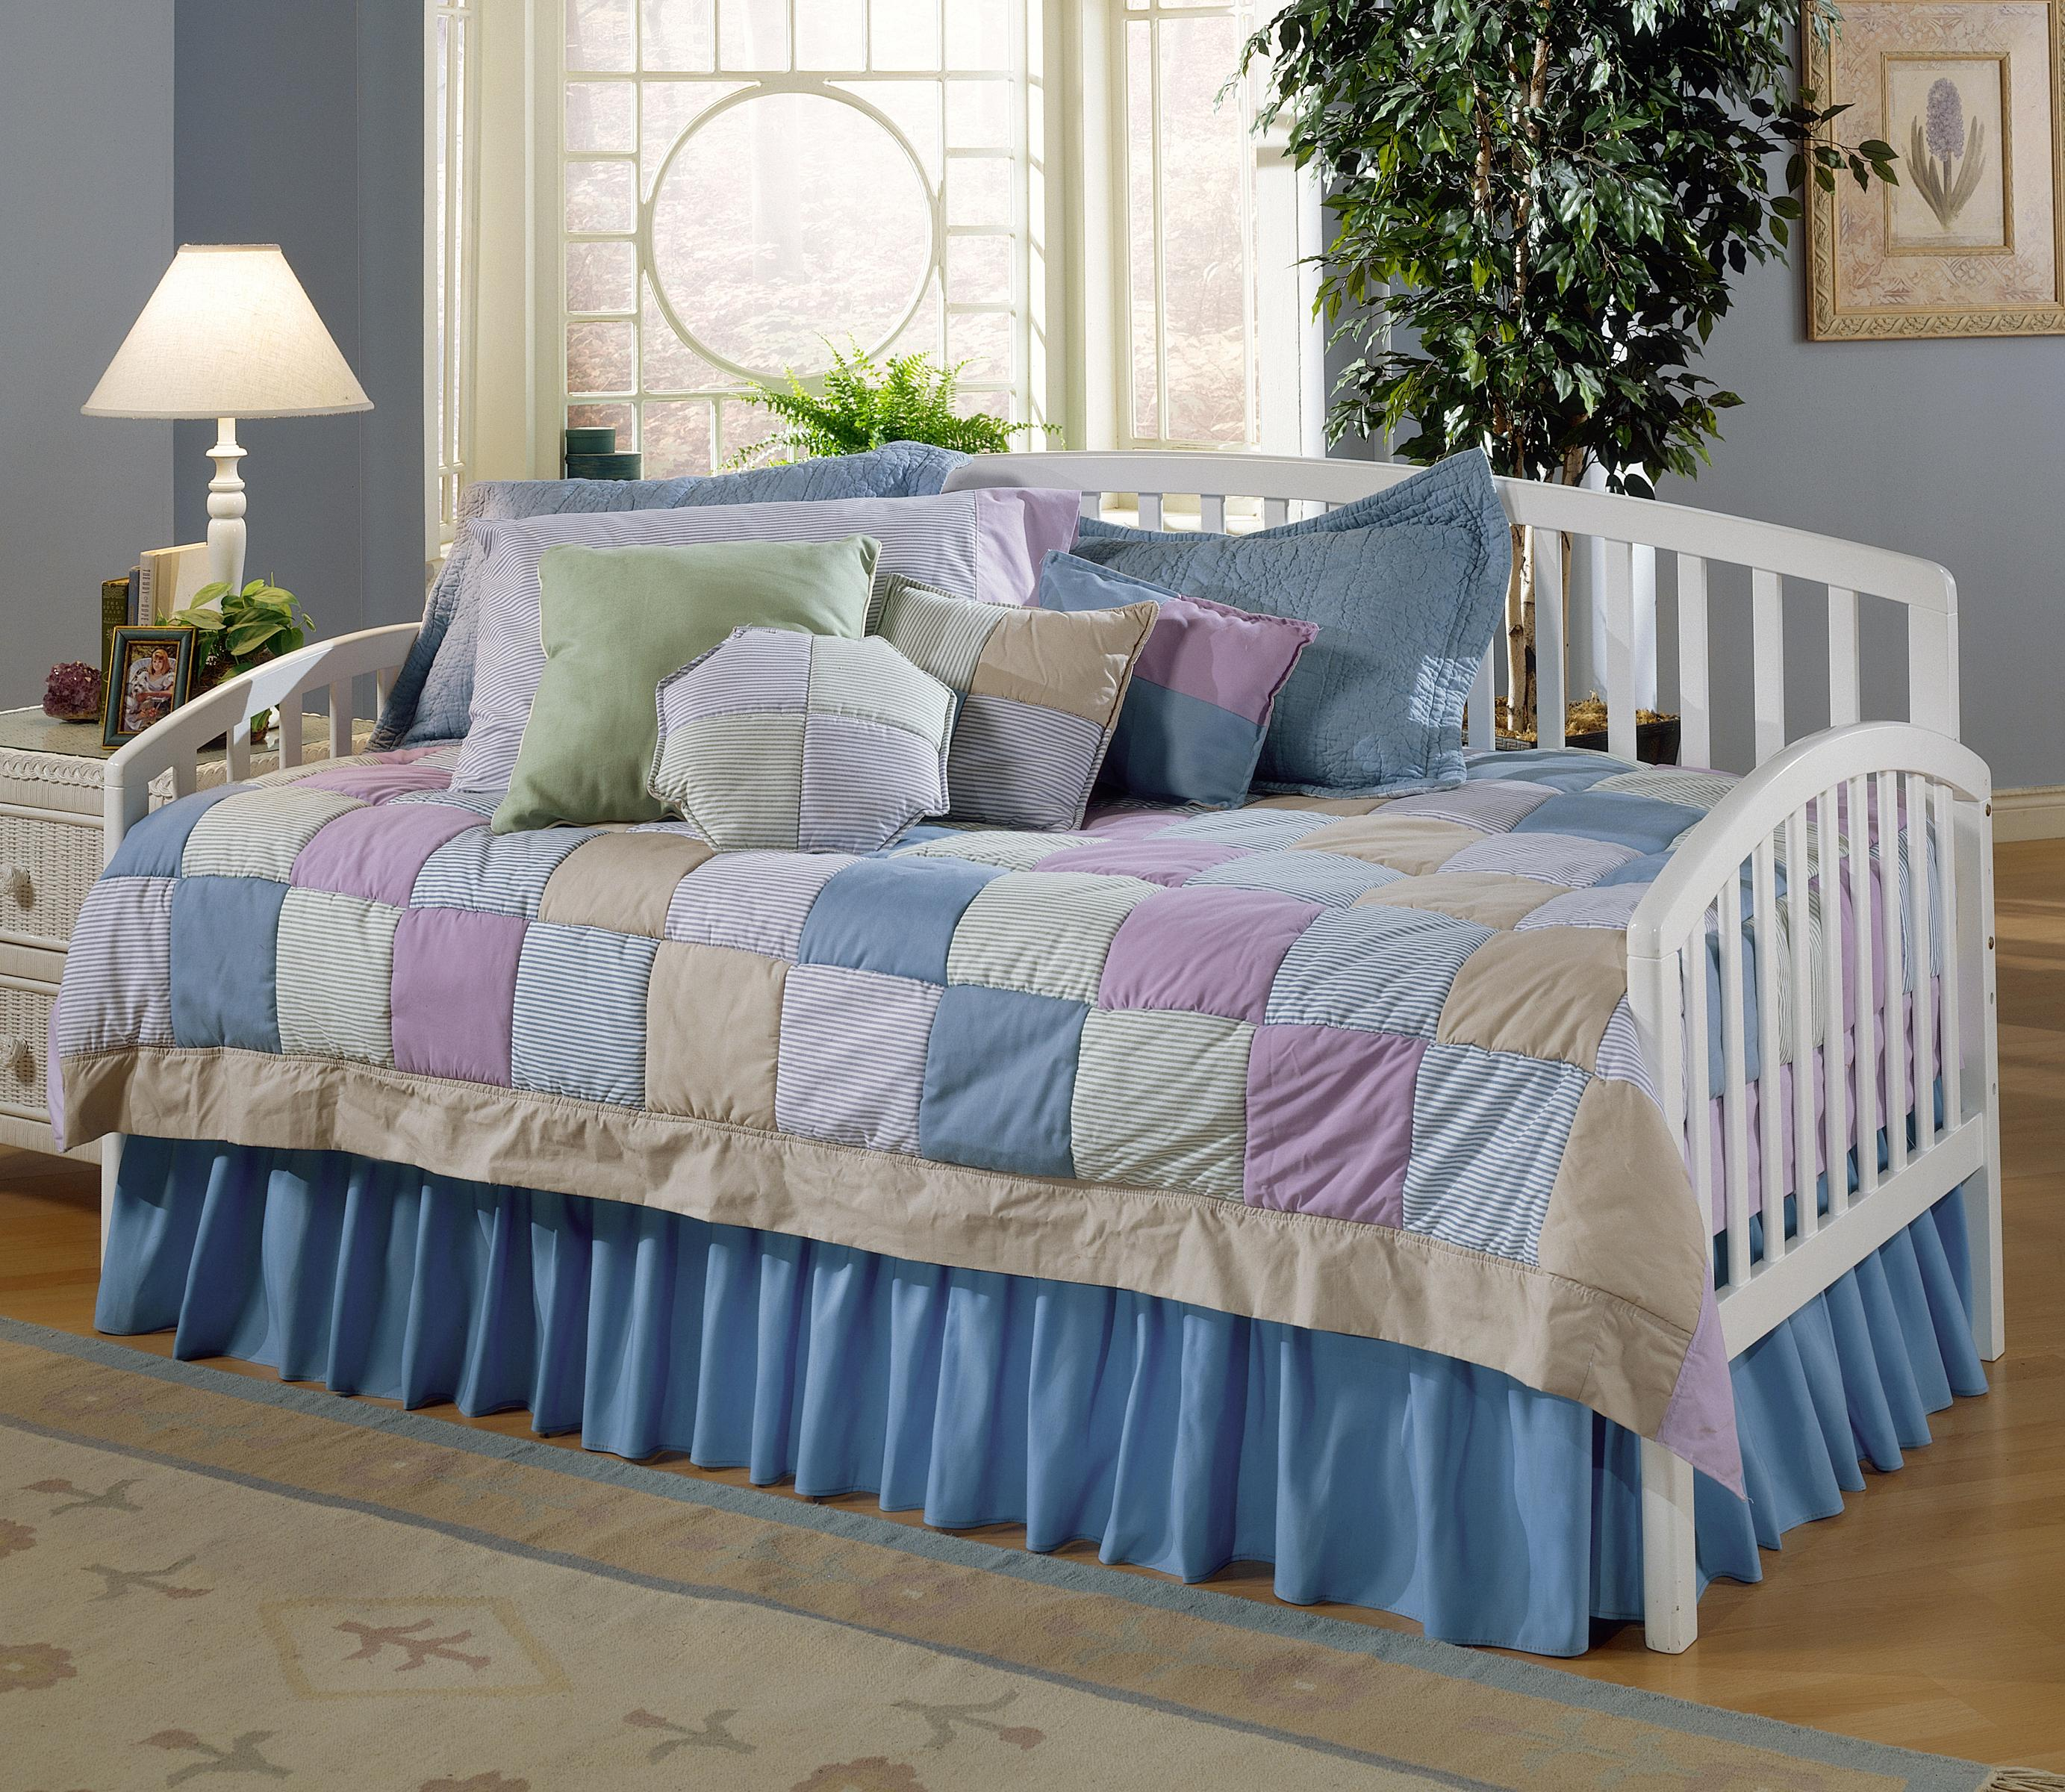 Hillsdale Daybeds Twin Carolina Daybed - Item Number: 1109DBLH